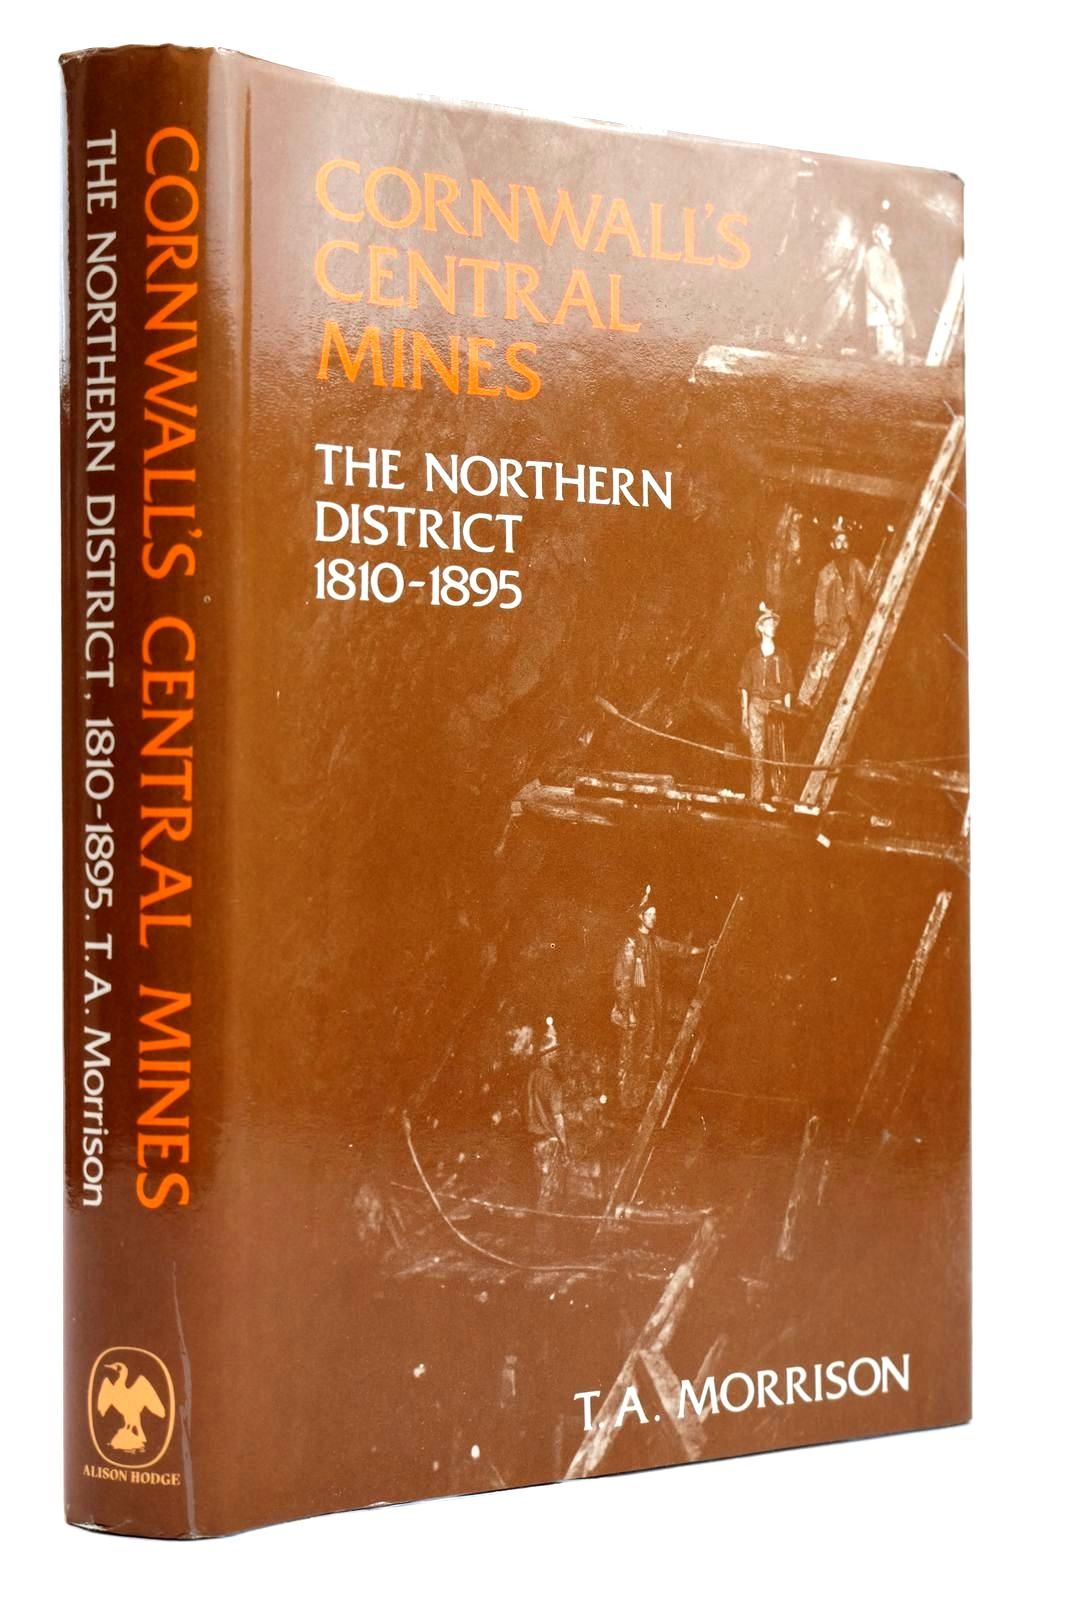 Photo of CORNWALL'S CENTRAL MINES THE NORTHERN DISTRICT written by Morrison, T.A. published by Alison Hodge (STOCK CODE: 2131982)  for sale by Stella & Rose's Books